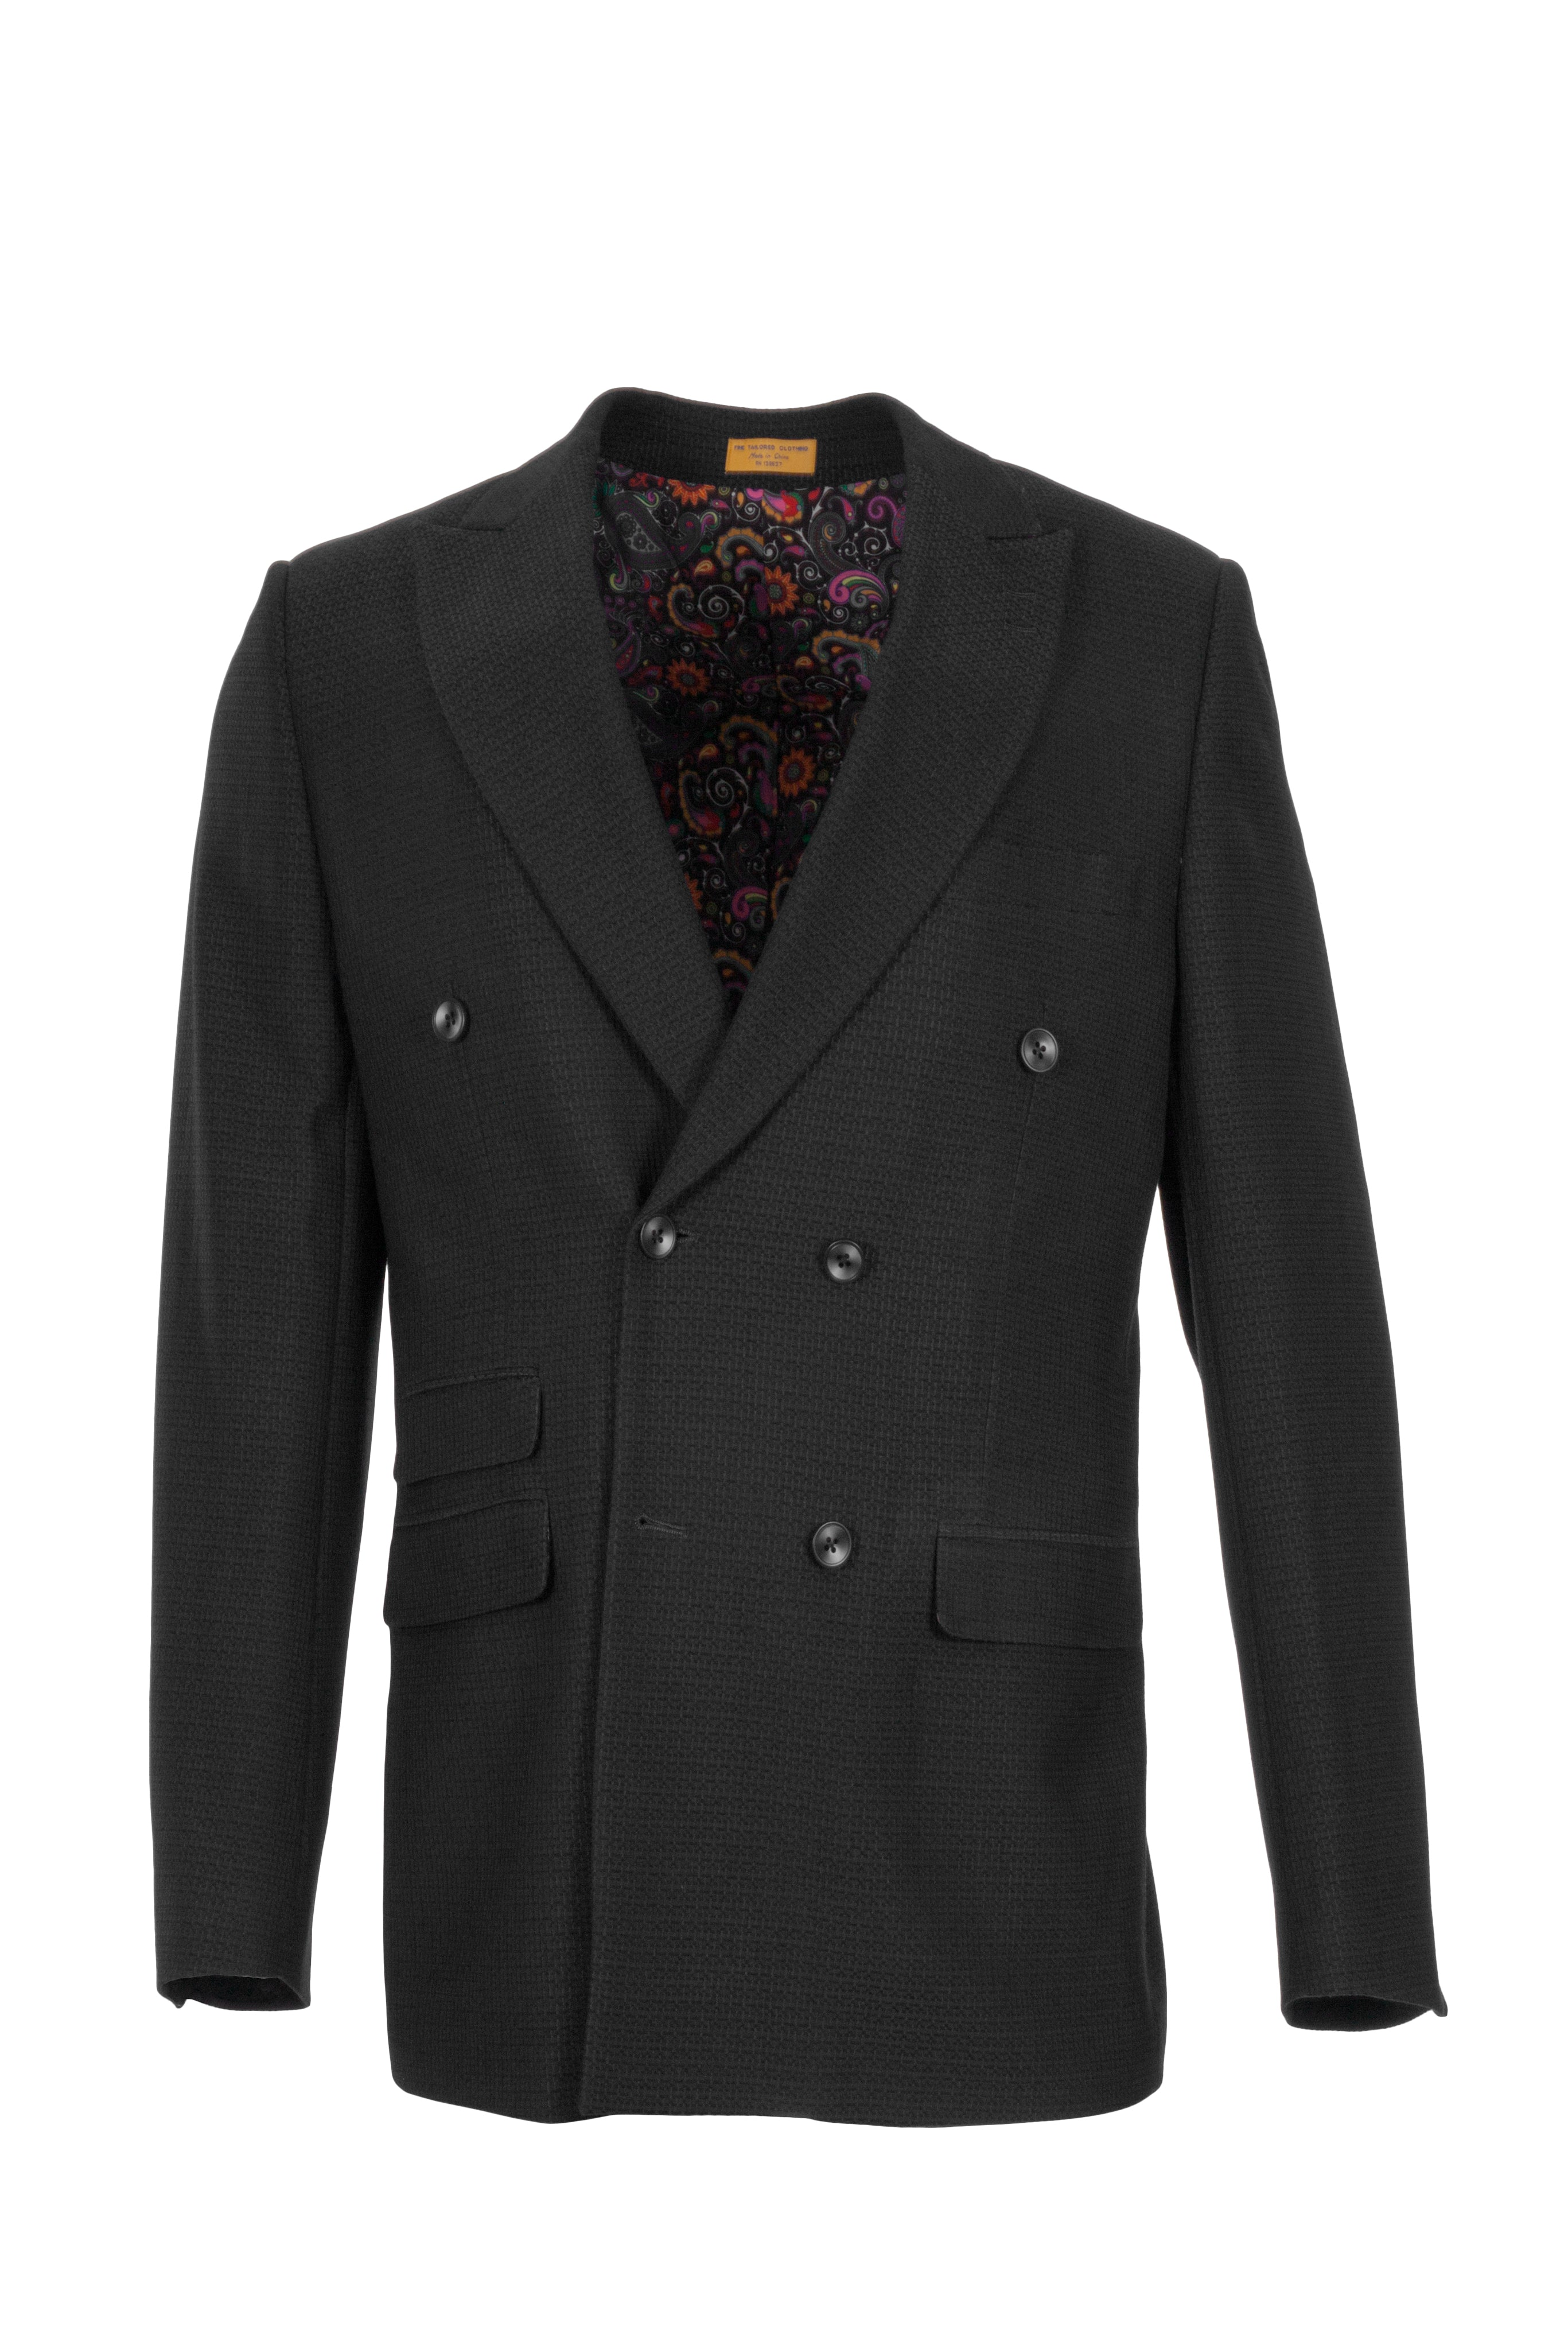 SPRING DOUBLE BREASTED BLACK BLAZER